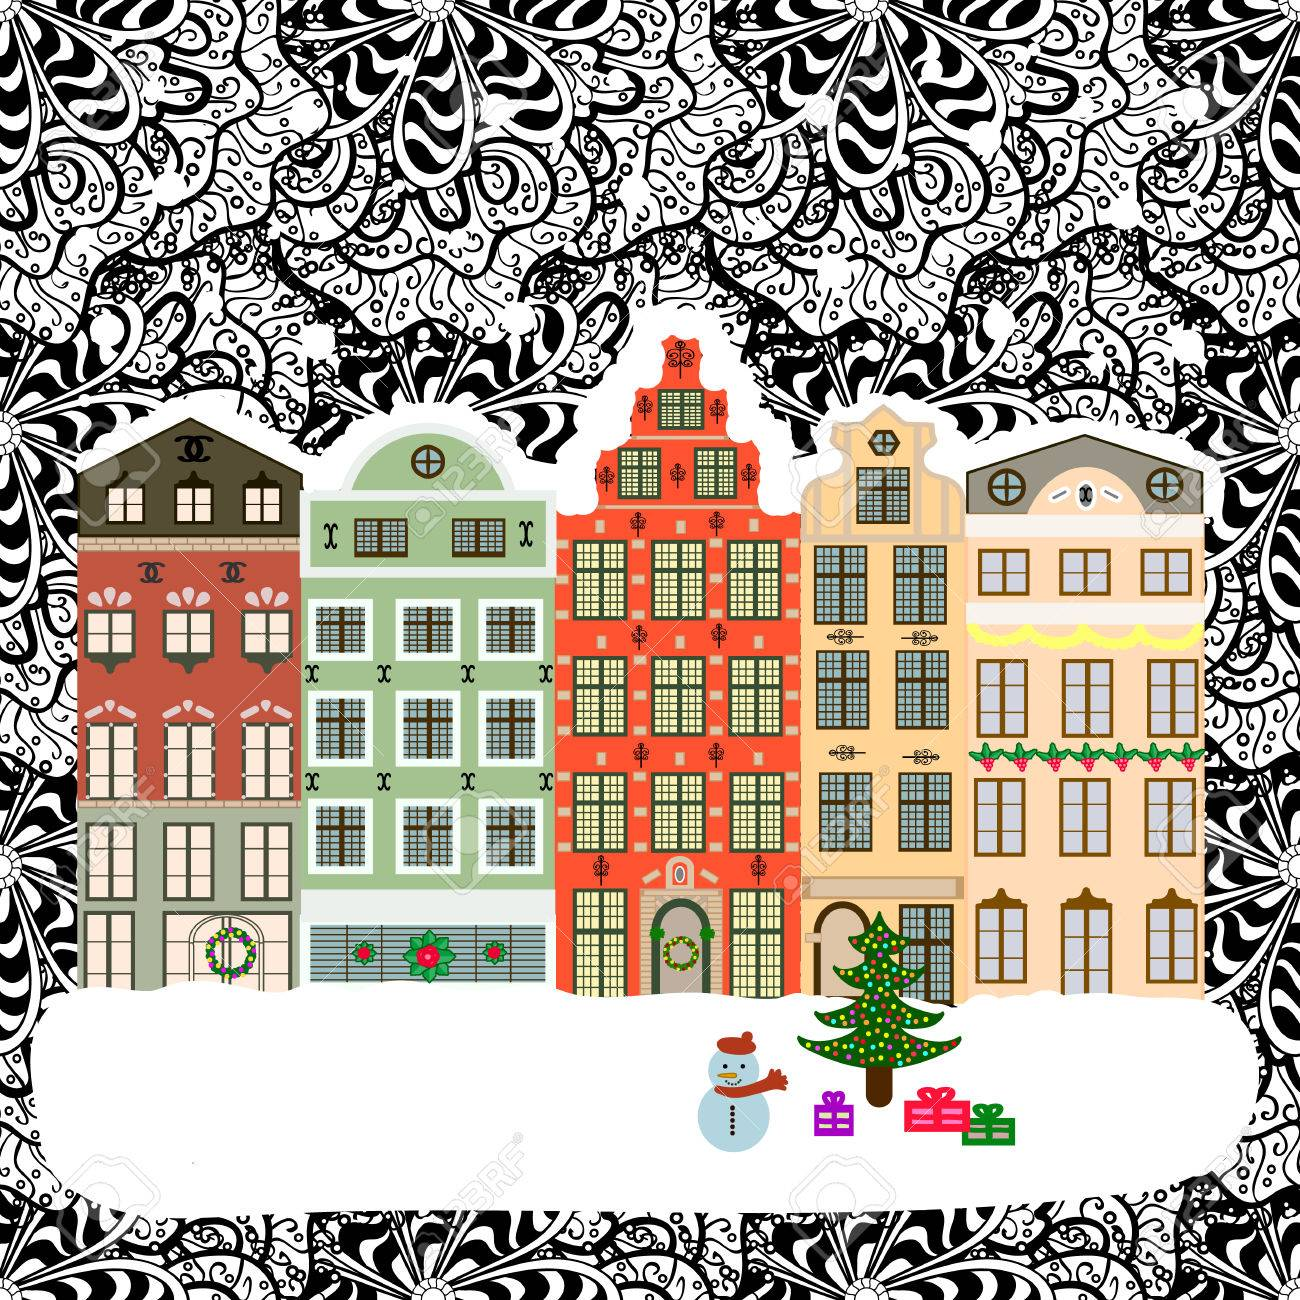 Christmas winter city. Vector xmas card with a decorated snowy old town at Christmas eve. - 60610335